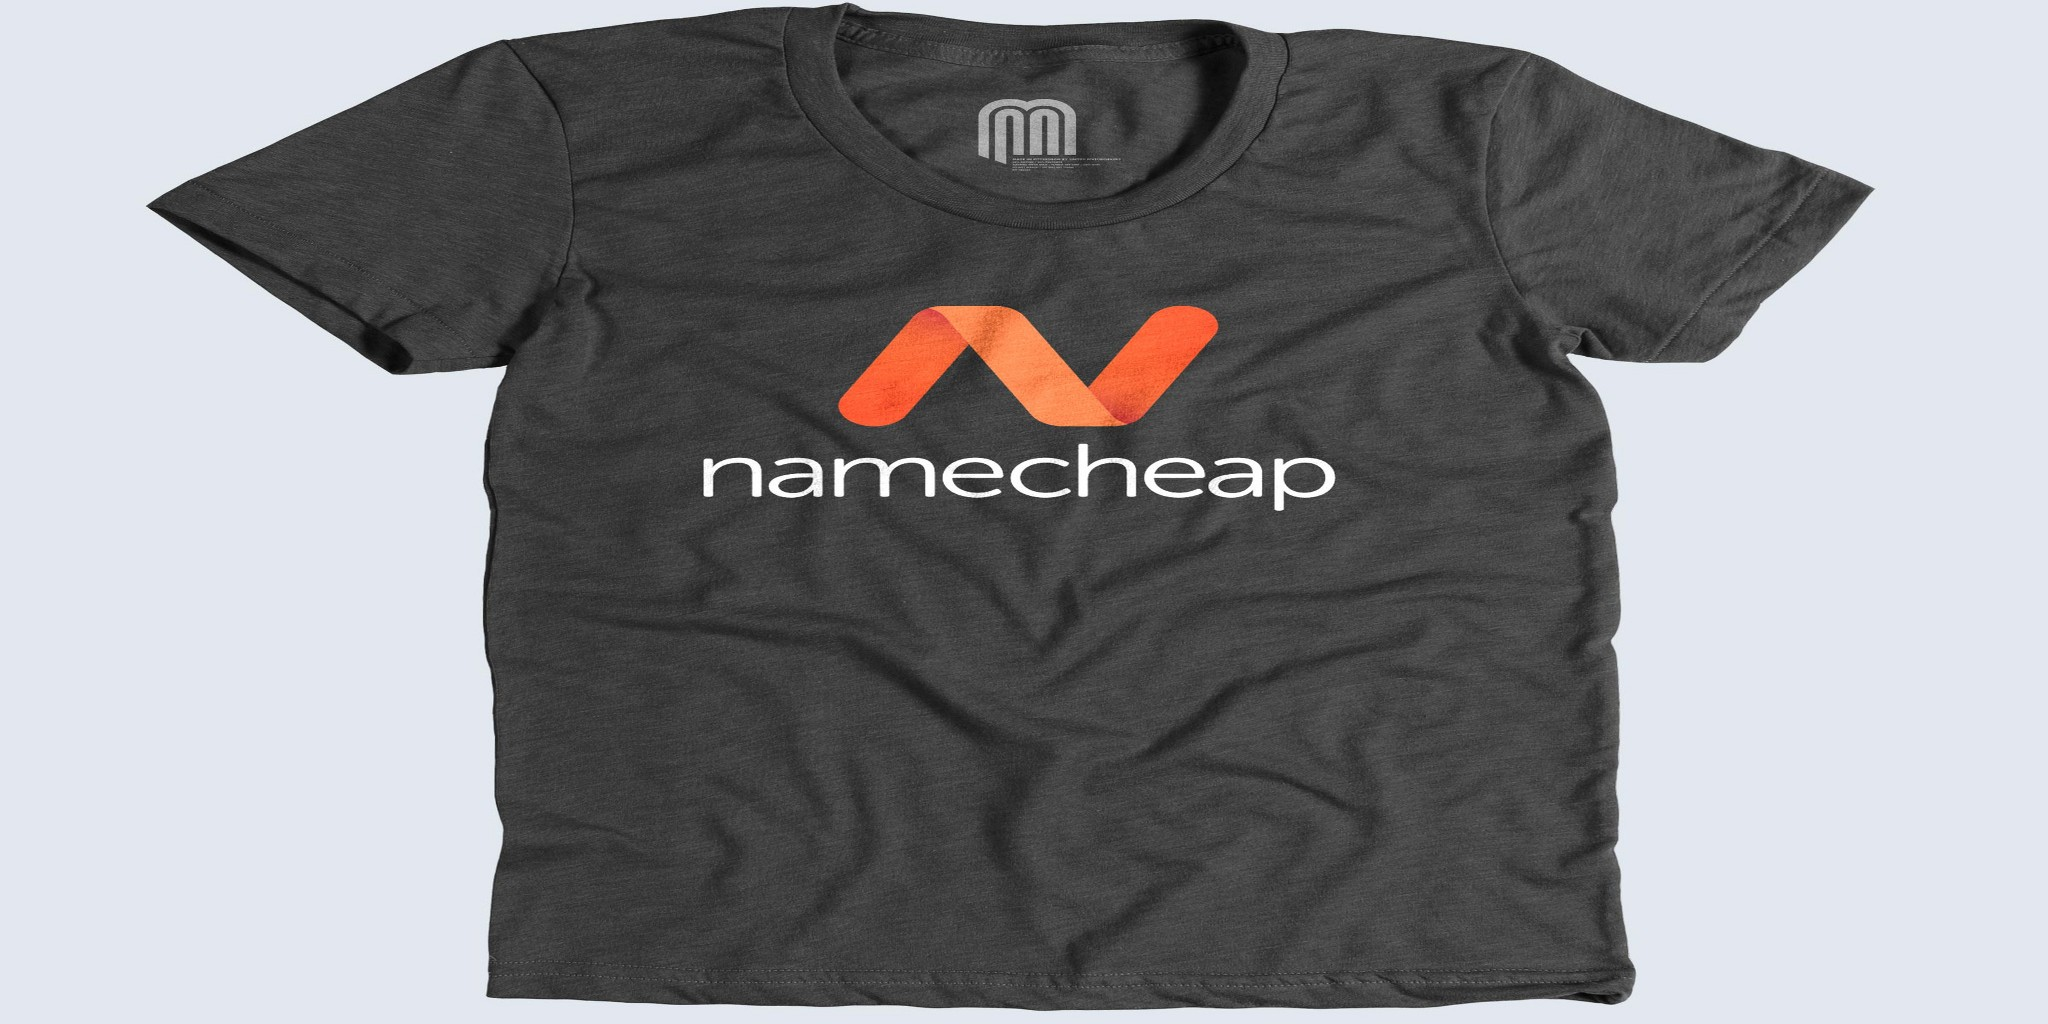 Dear Namecheap, you rock!